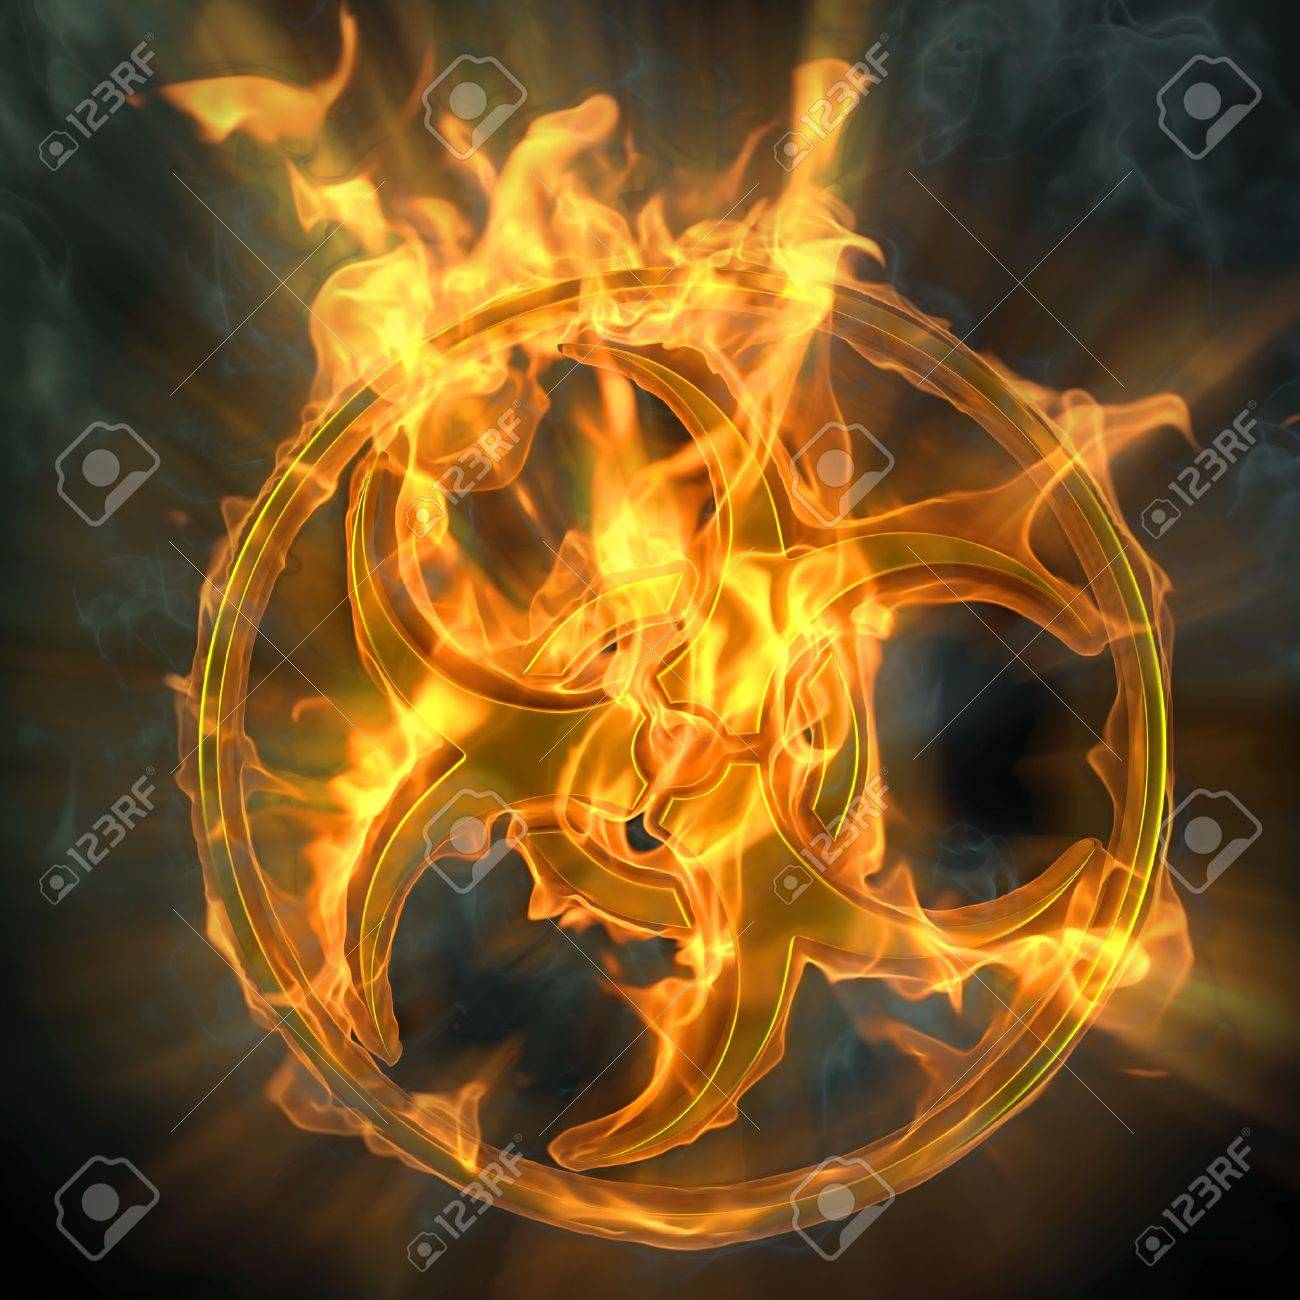 flaming biohazard sign. isolated on black. Stock Photo - 9311035